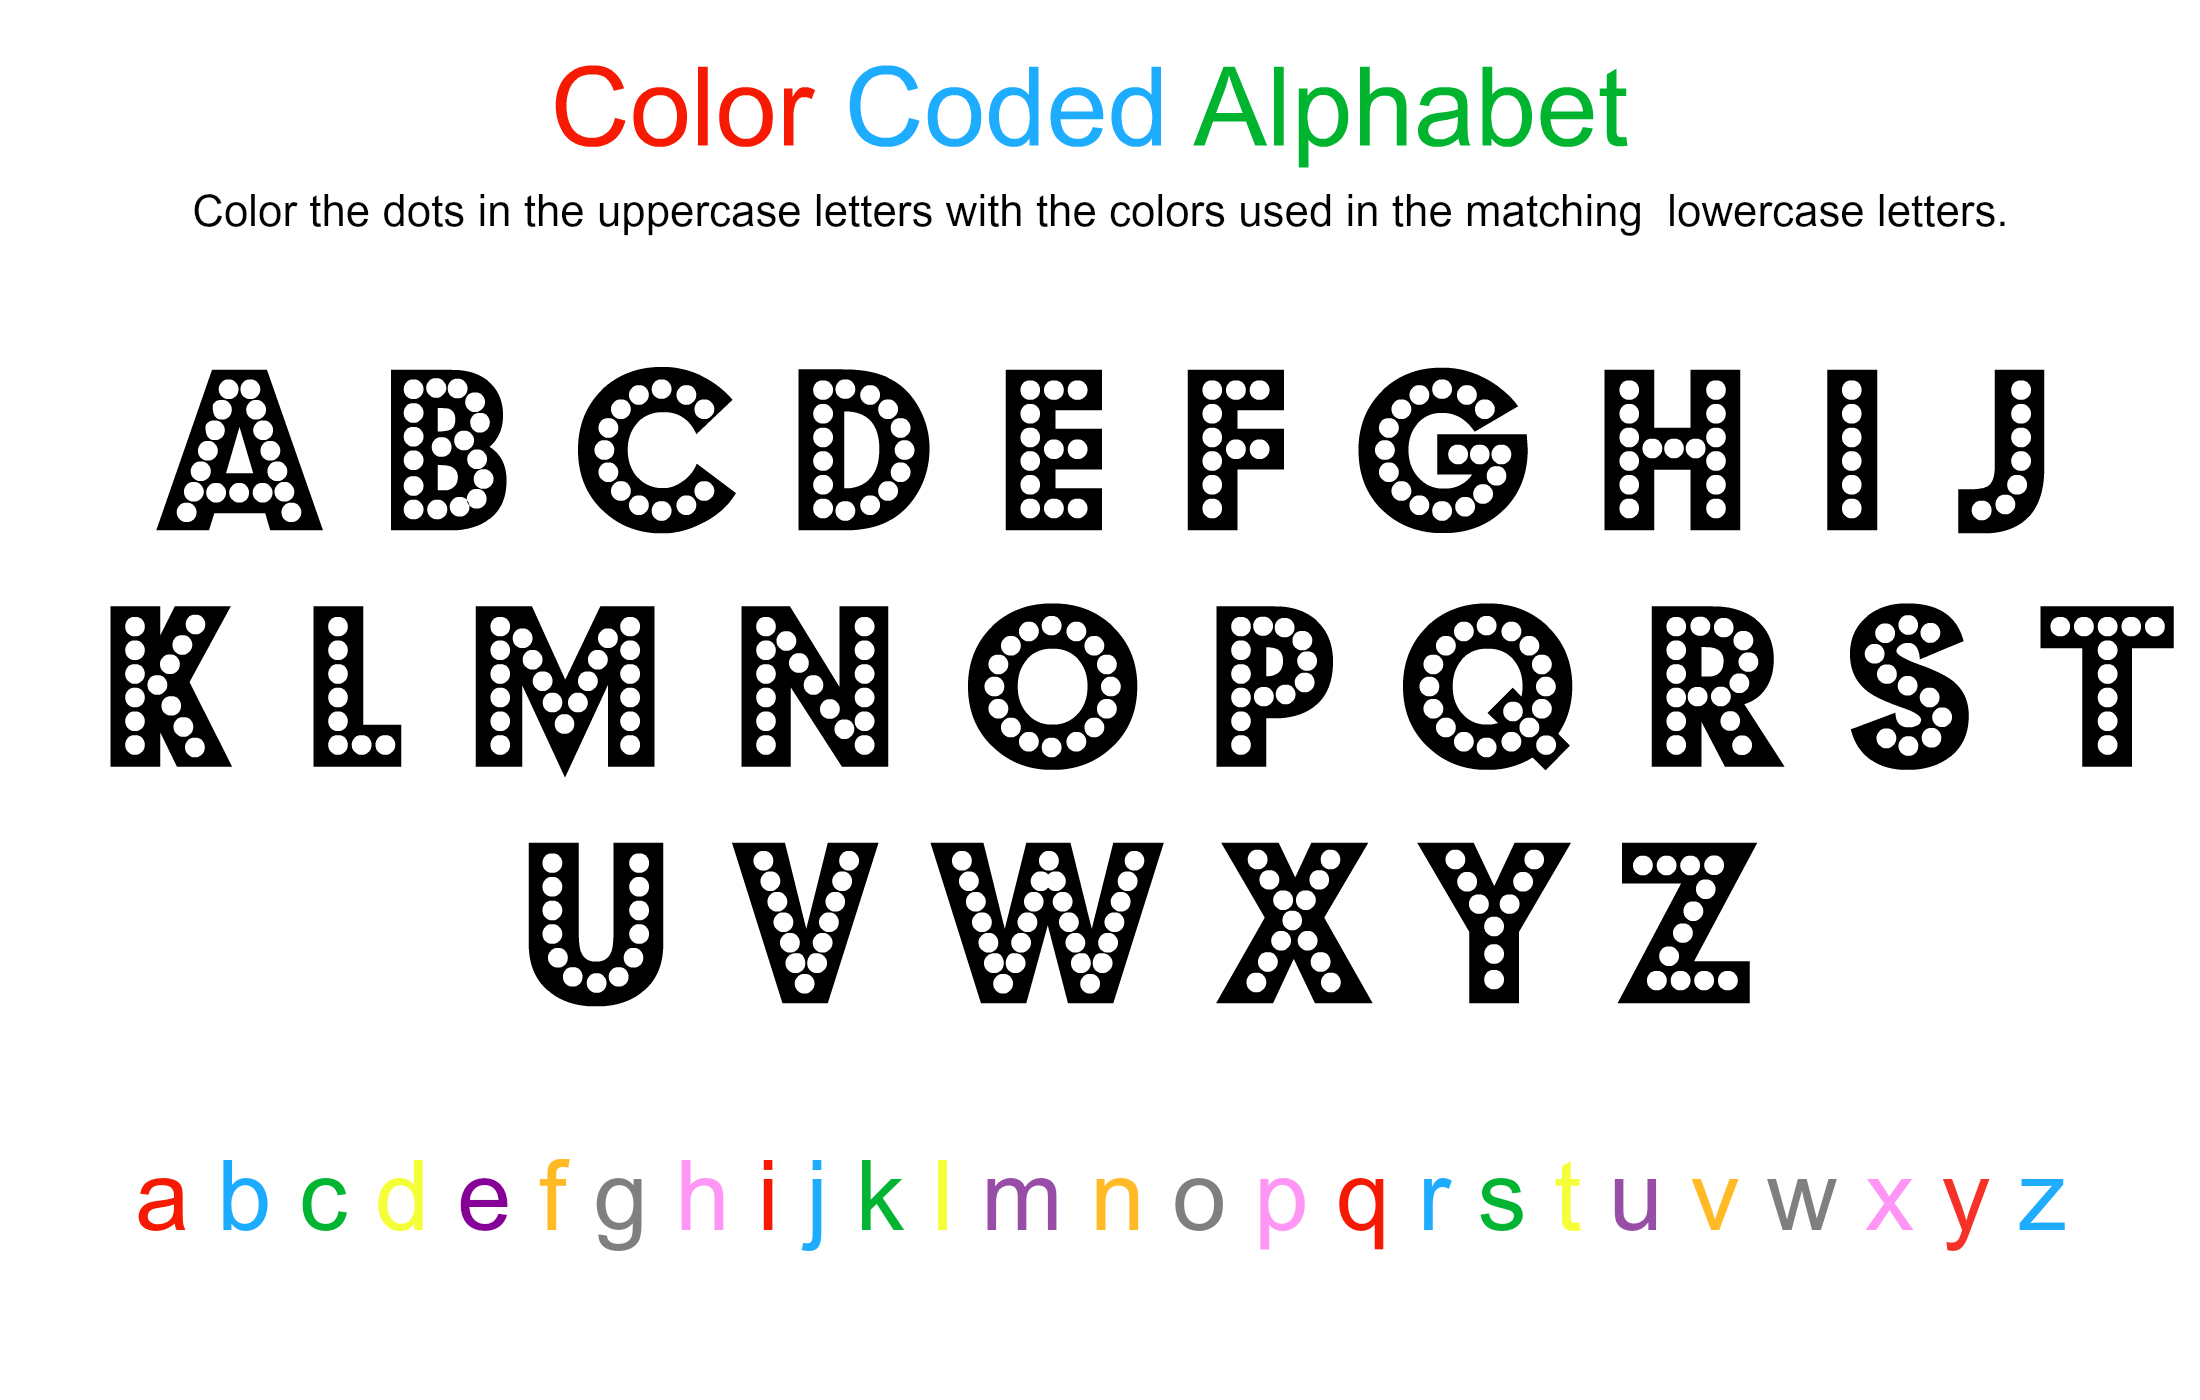 Alphabet Coloring Sheet - Free Printable - No Time For Flash Cards - Free Printable Colored Letters Of The Alphabet